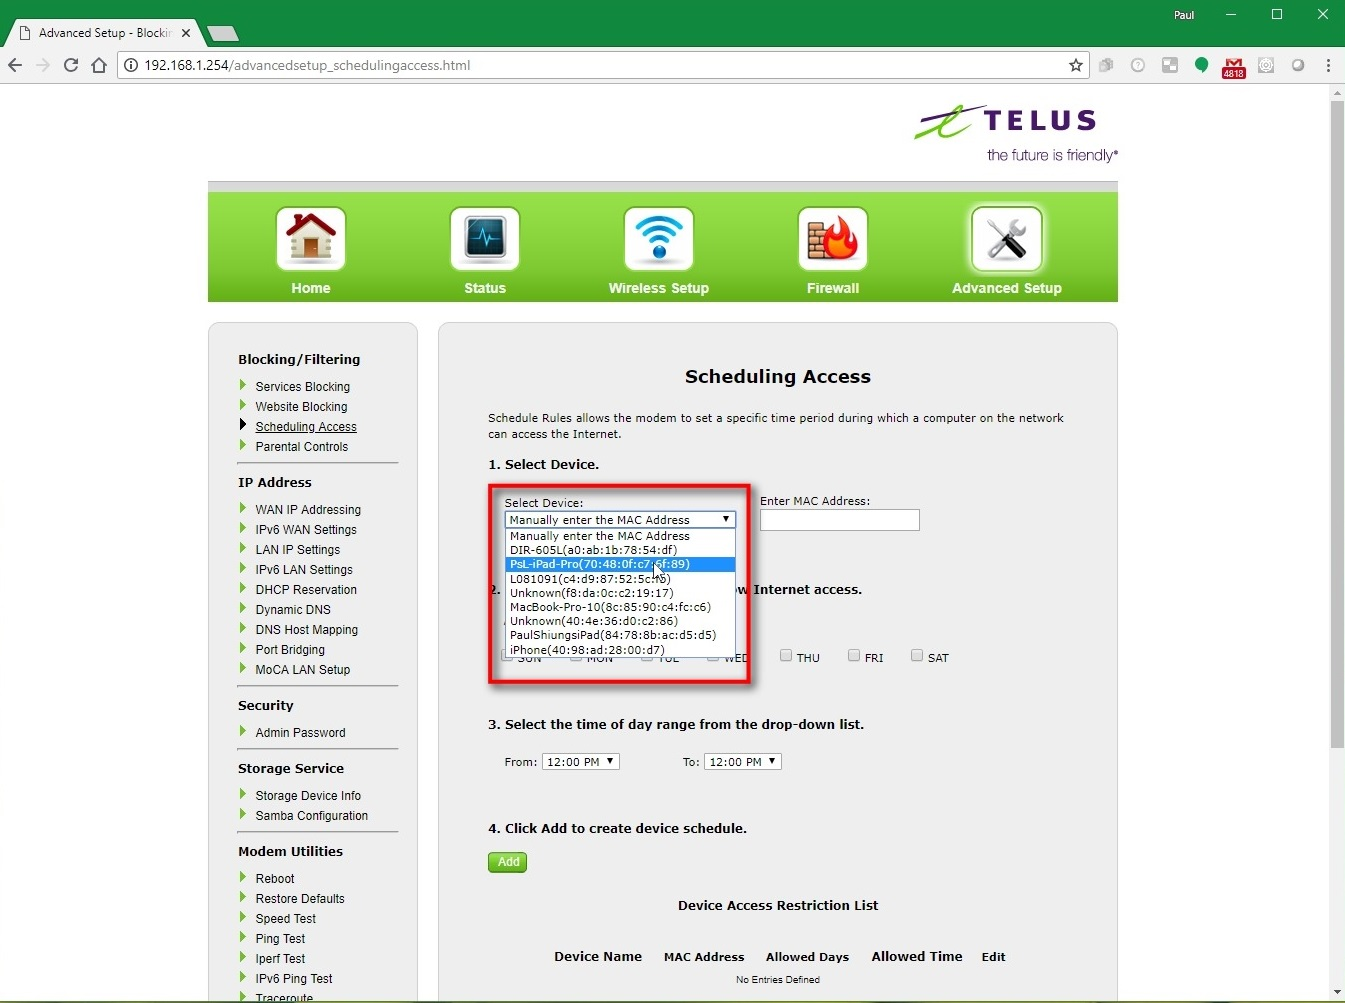 Parental Control - Setting up Access & Restrictions on Home